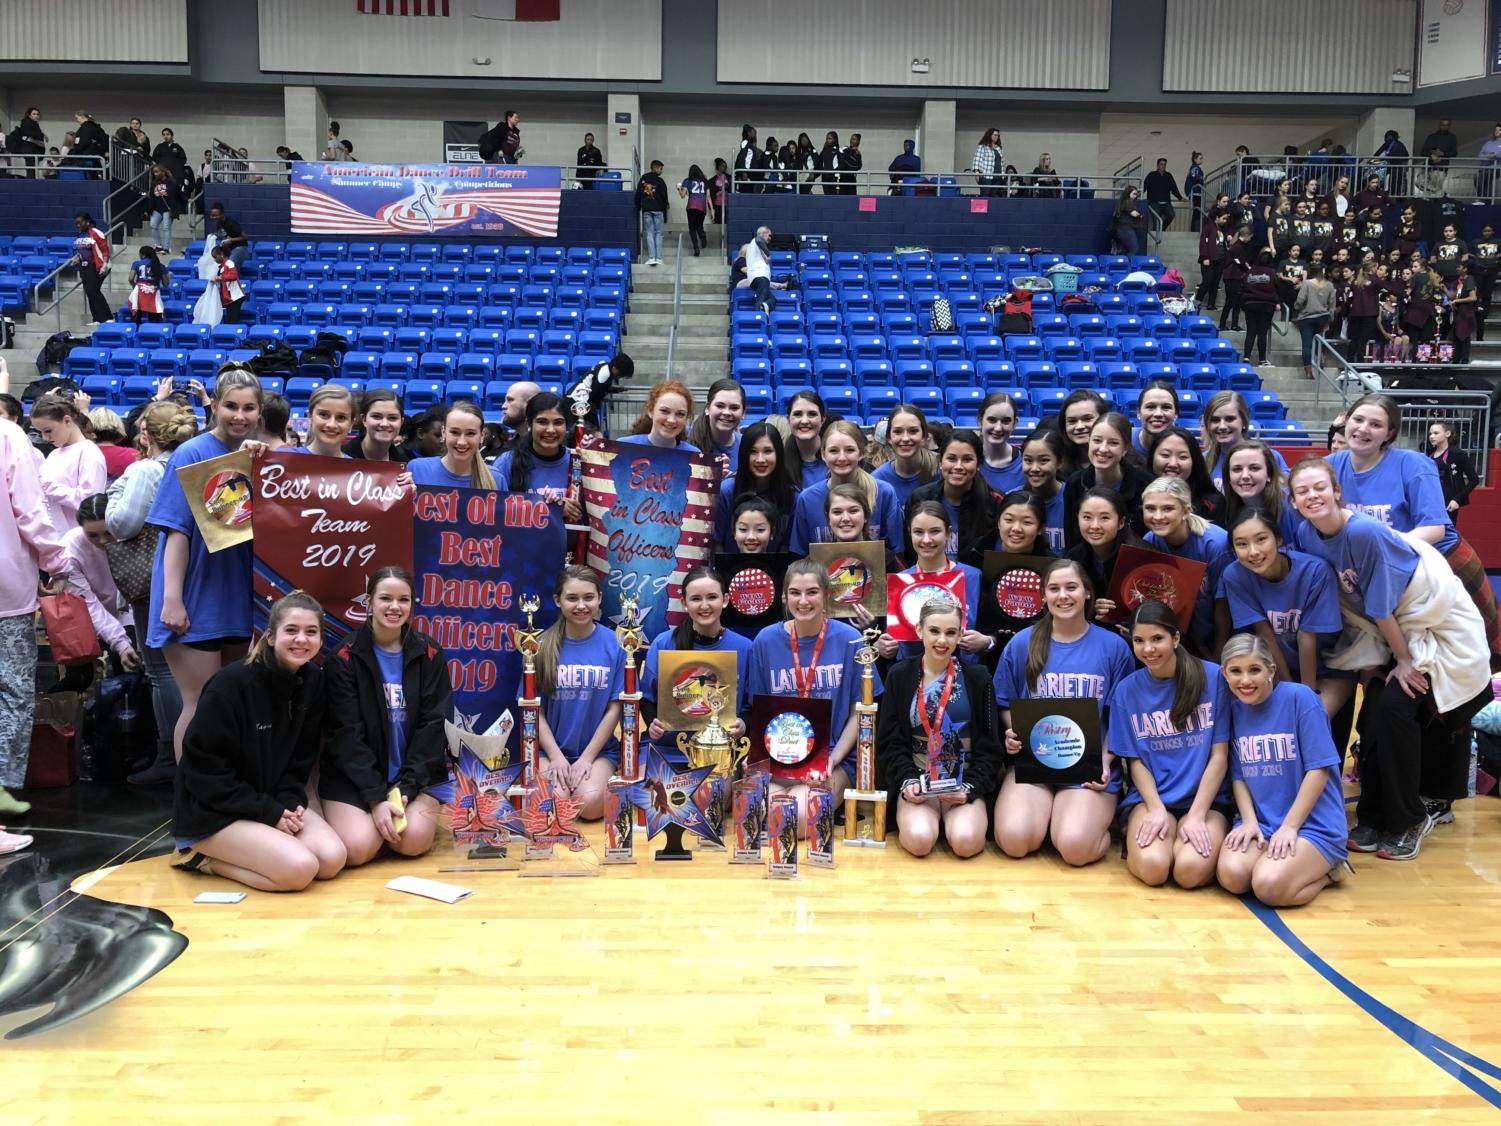 The Coppell High School Lariettes competed at the American Dance/Drill Team (ADTS) regionals on Feb. 23 at Duncanville High School. Coppell Lariettes won a total of 17 awards, including best soloist and highest GPA in the Large Team division.